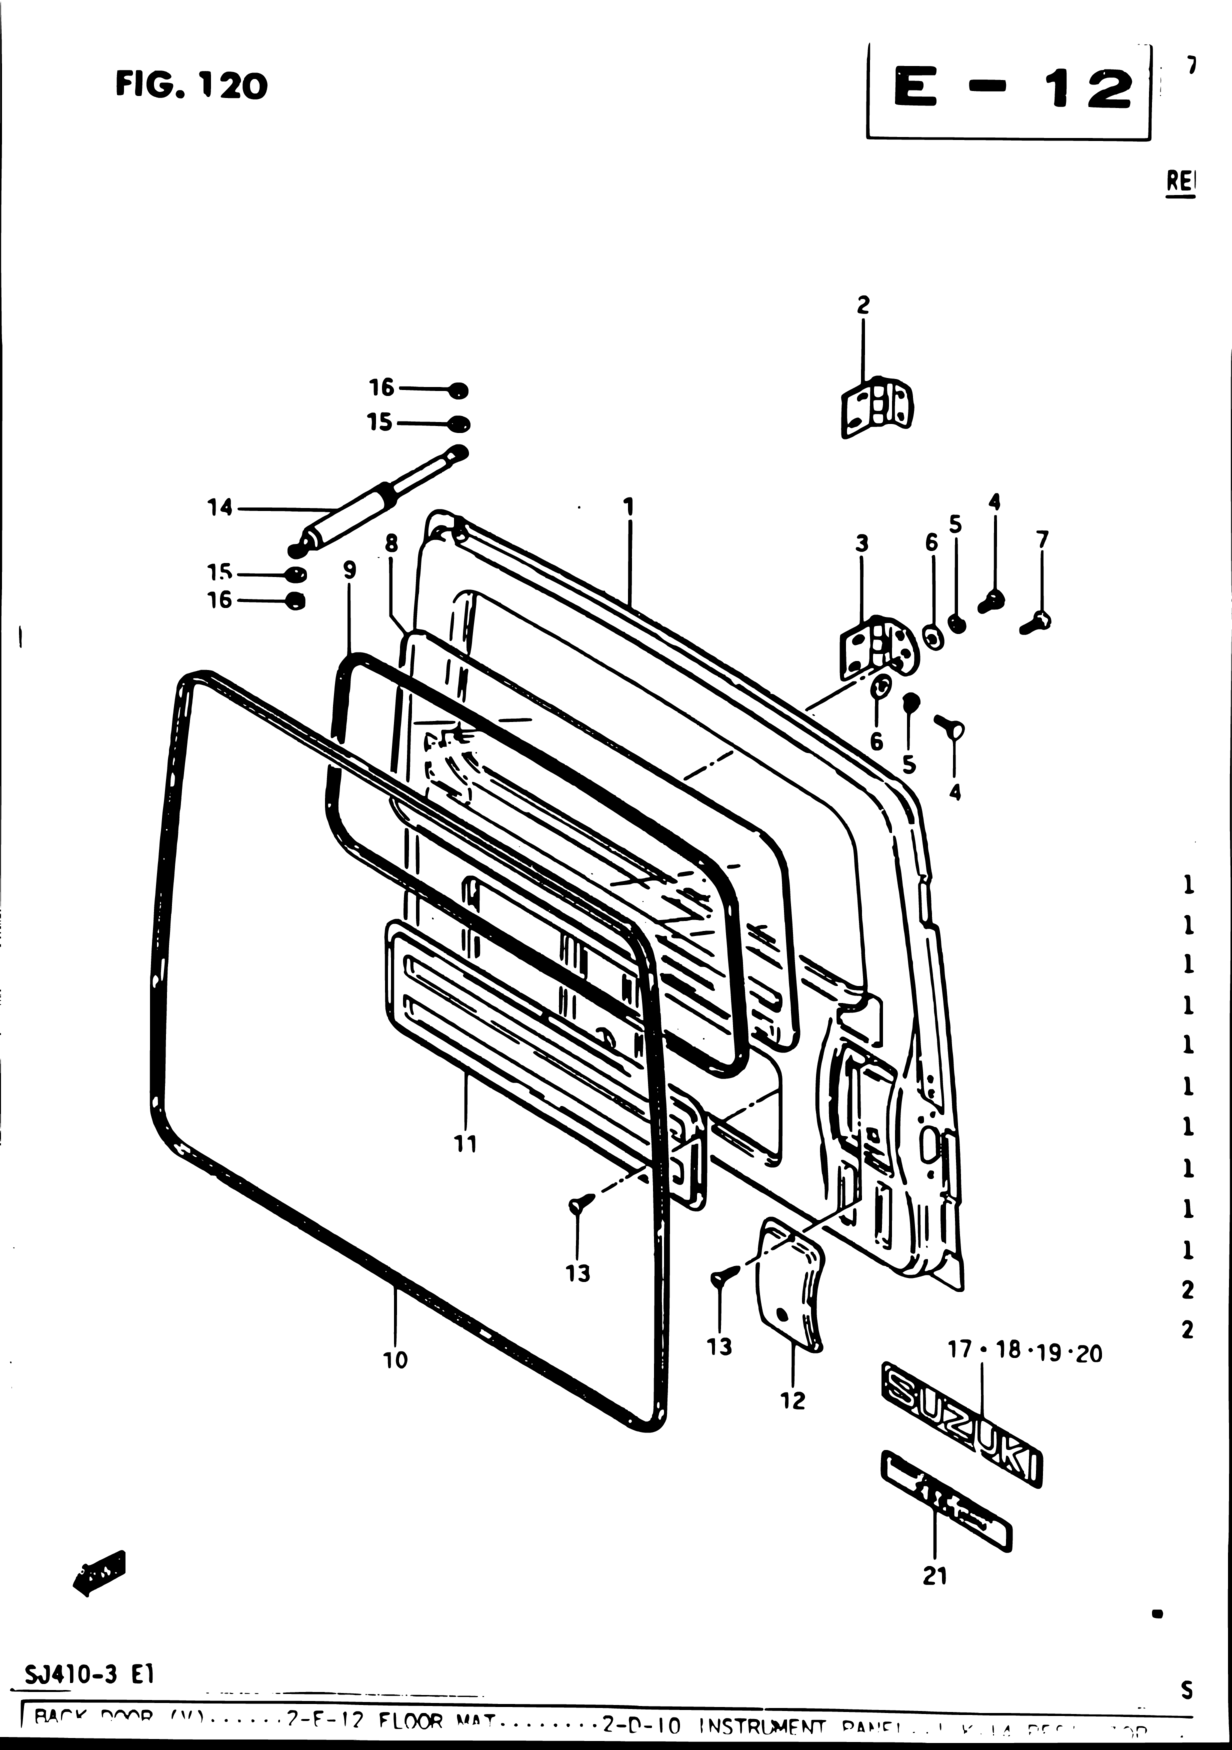 Suzuki Door Schematic Books Of Wiring Diagram Daihatsu Charade G30 Middle East Samurai Sj Sj410 4 E01 Interior Trim 120 Back Rh Catcar Info